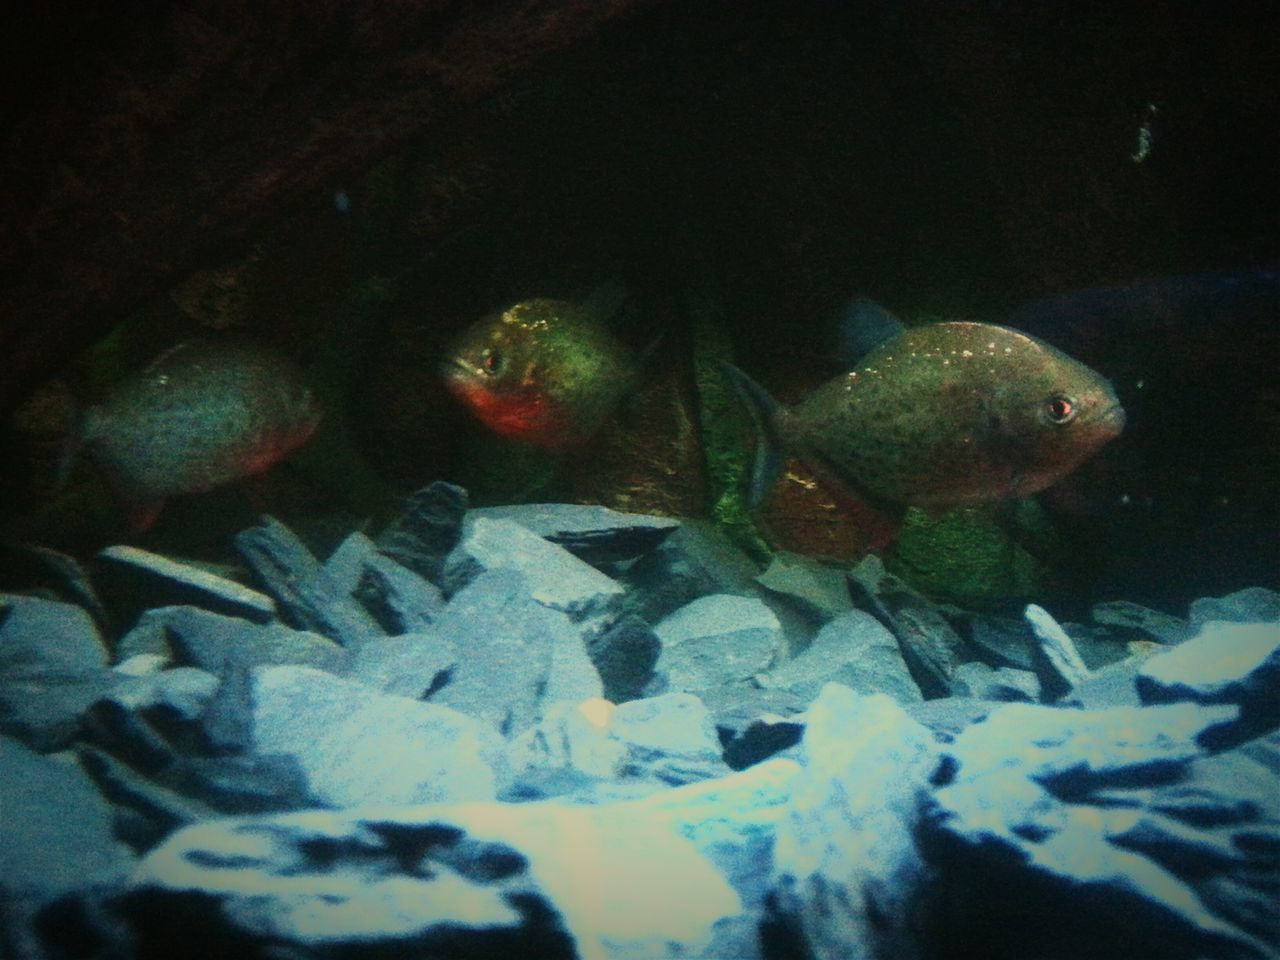 Piranha Piranhas Mypets Today Taking Photos Fish Red Redbelly Predators Predatory Home Sweet Home Water Freshwater Fish my piranhas are coming on well now